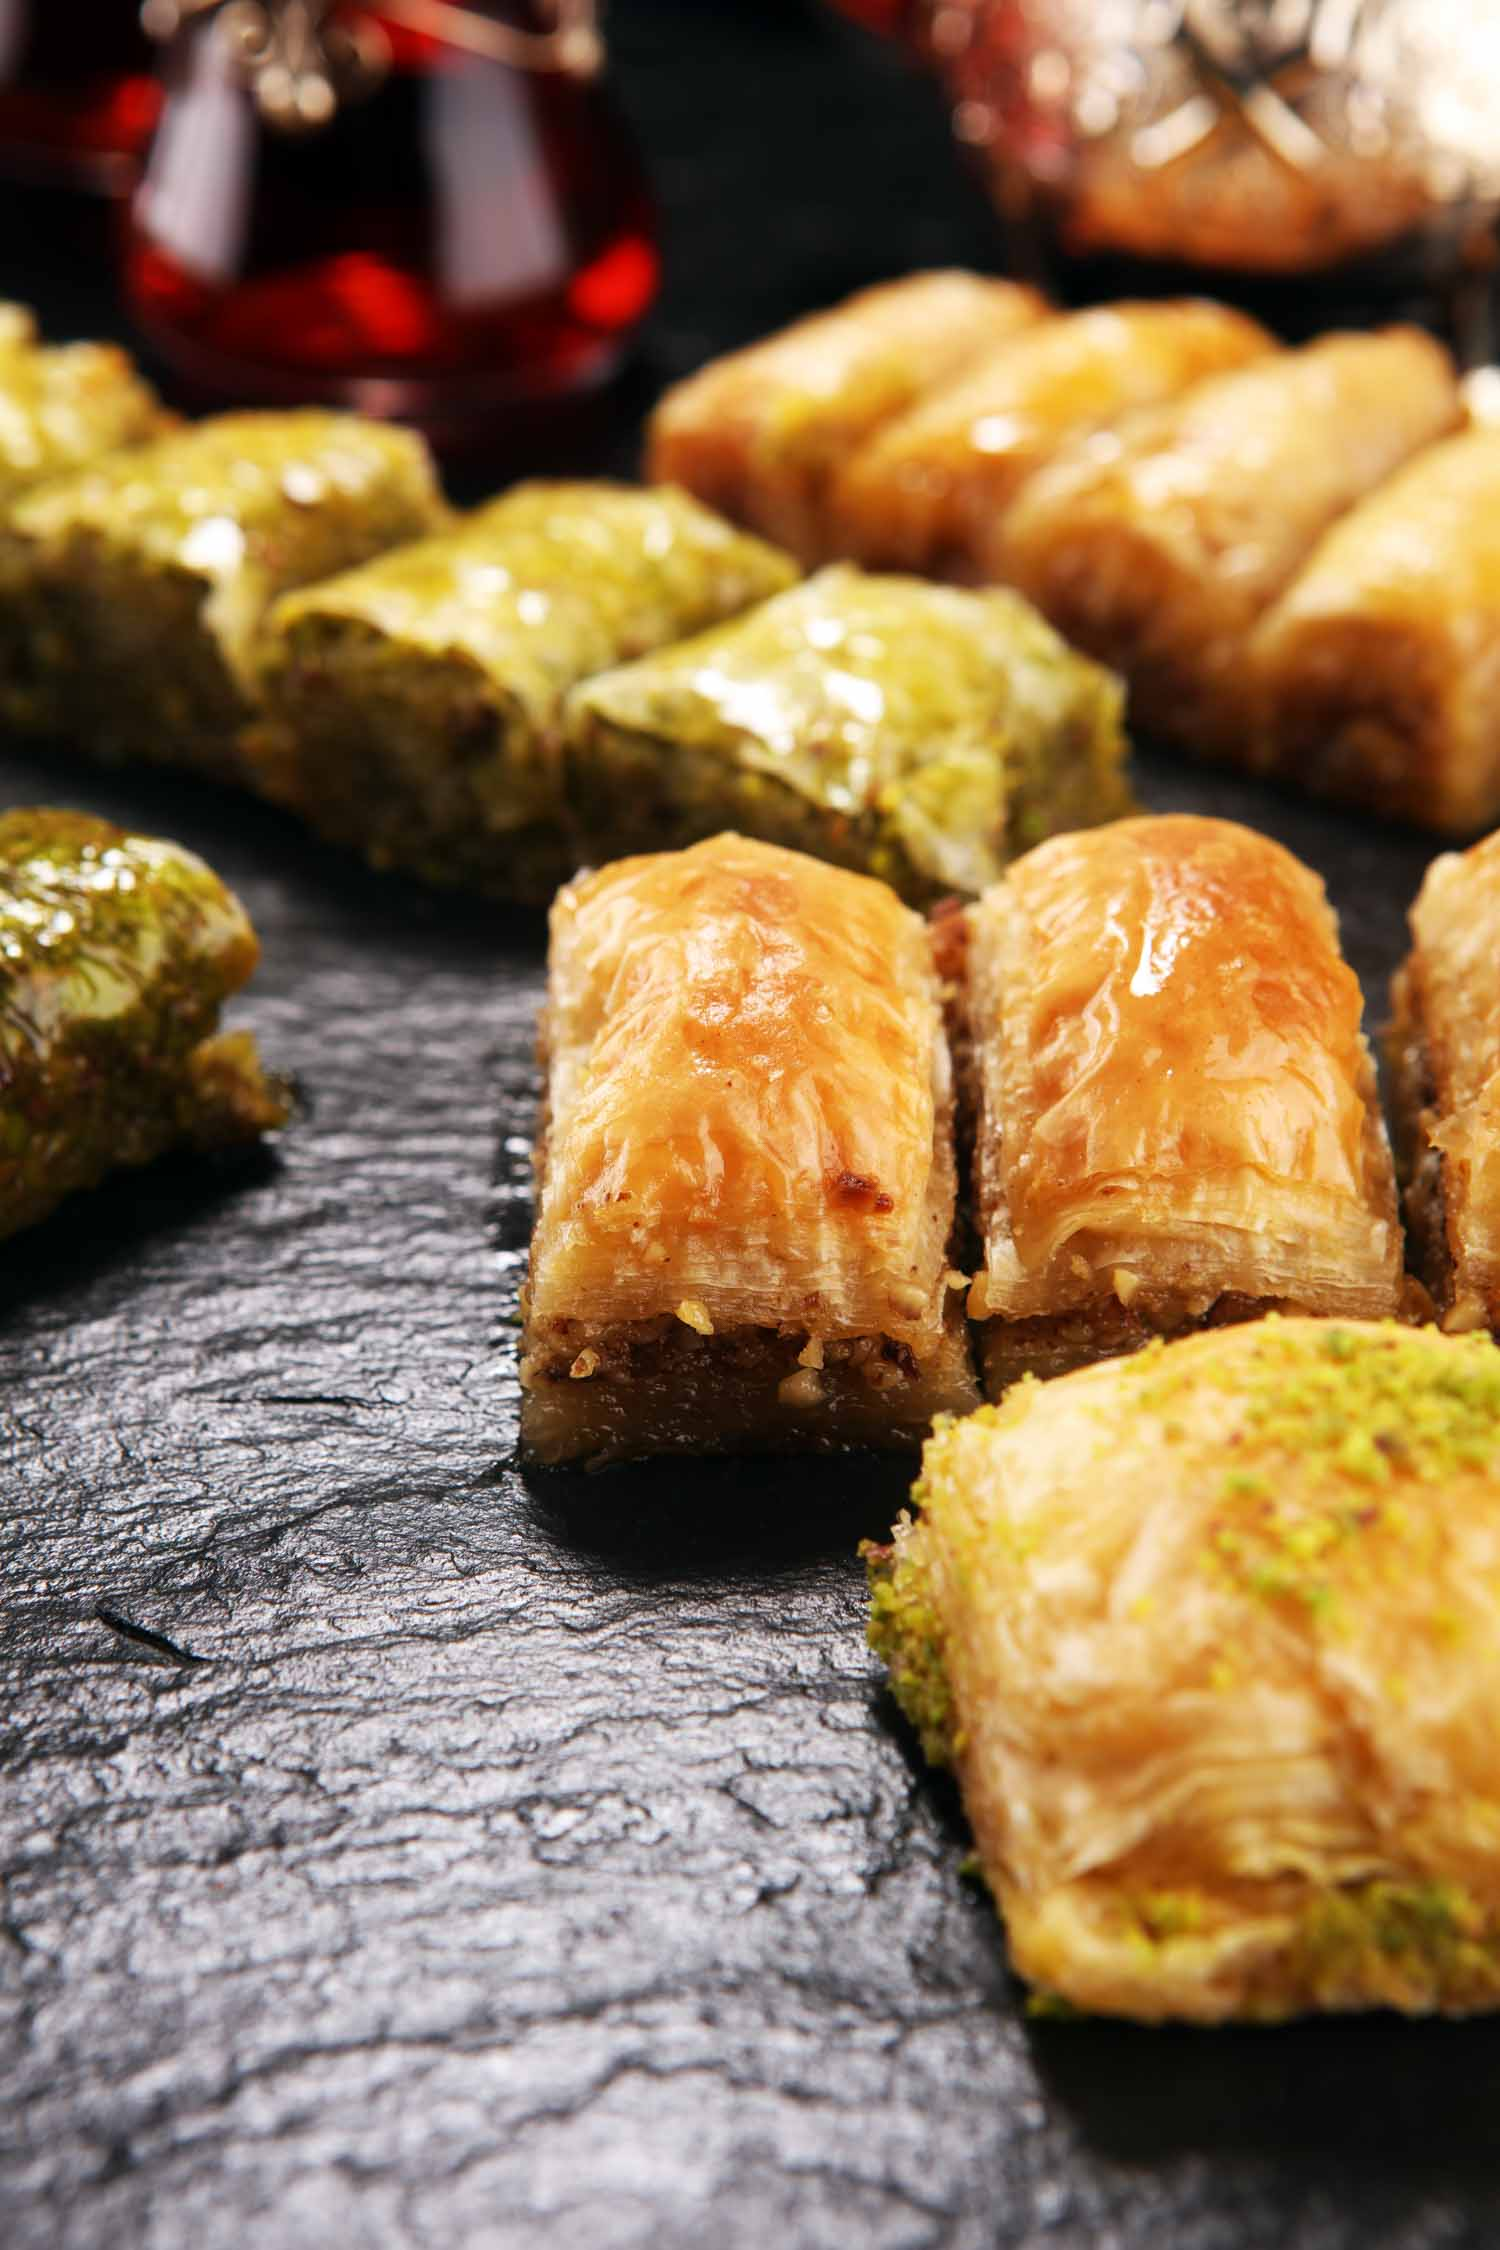 Middle eastern or arabic dishes. Turkish Dessert Baklava with pistachio.